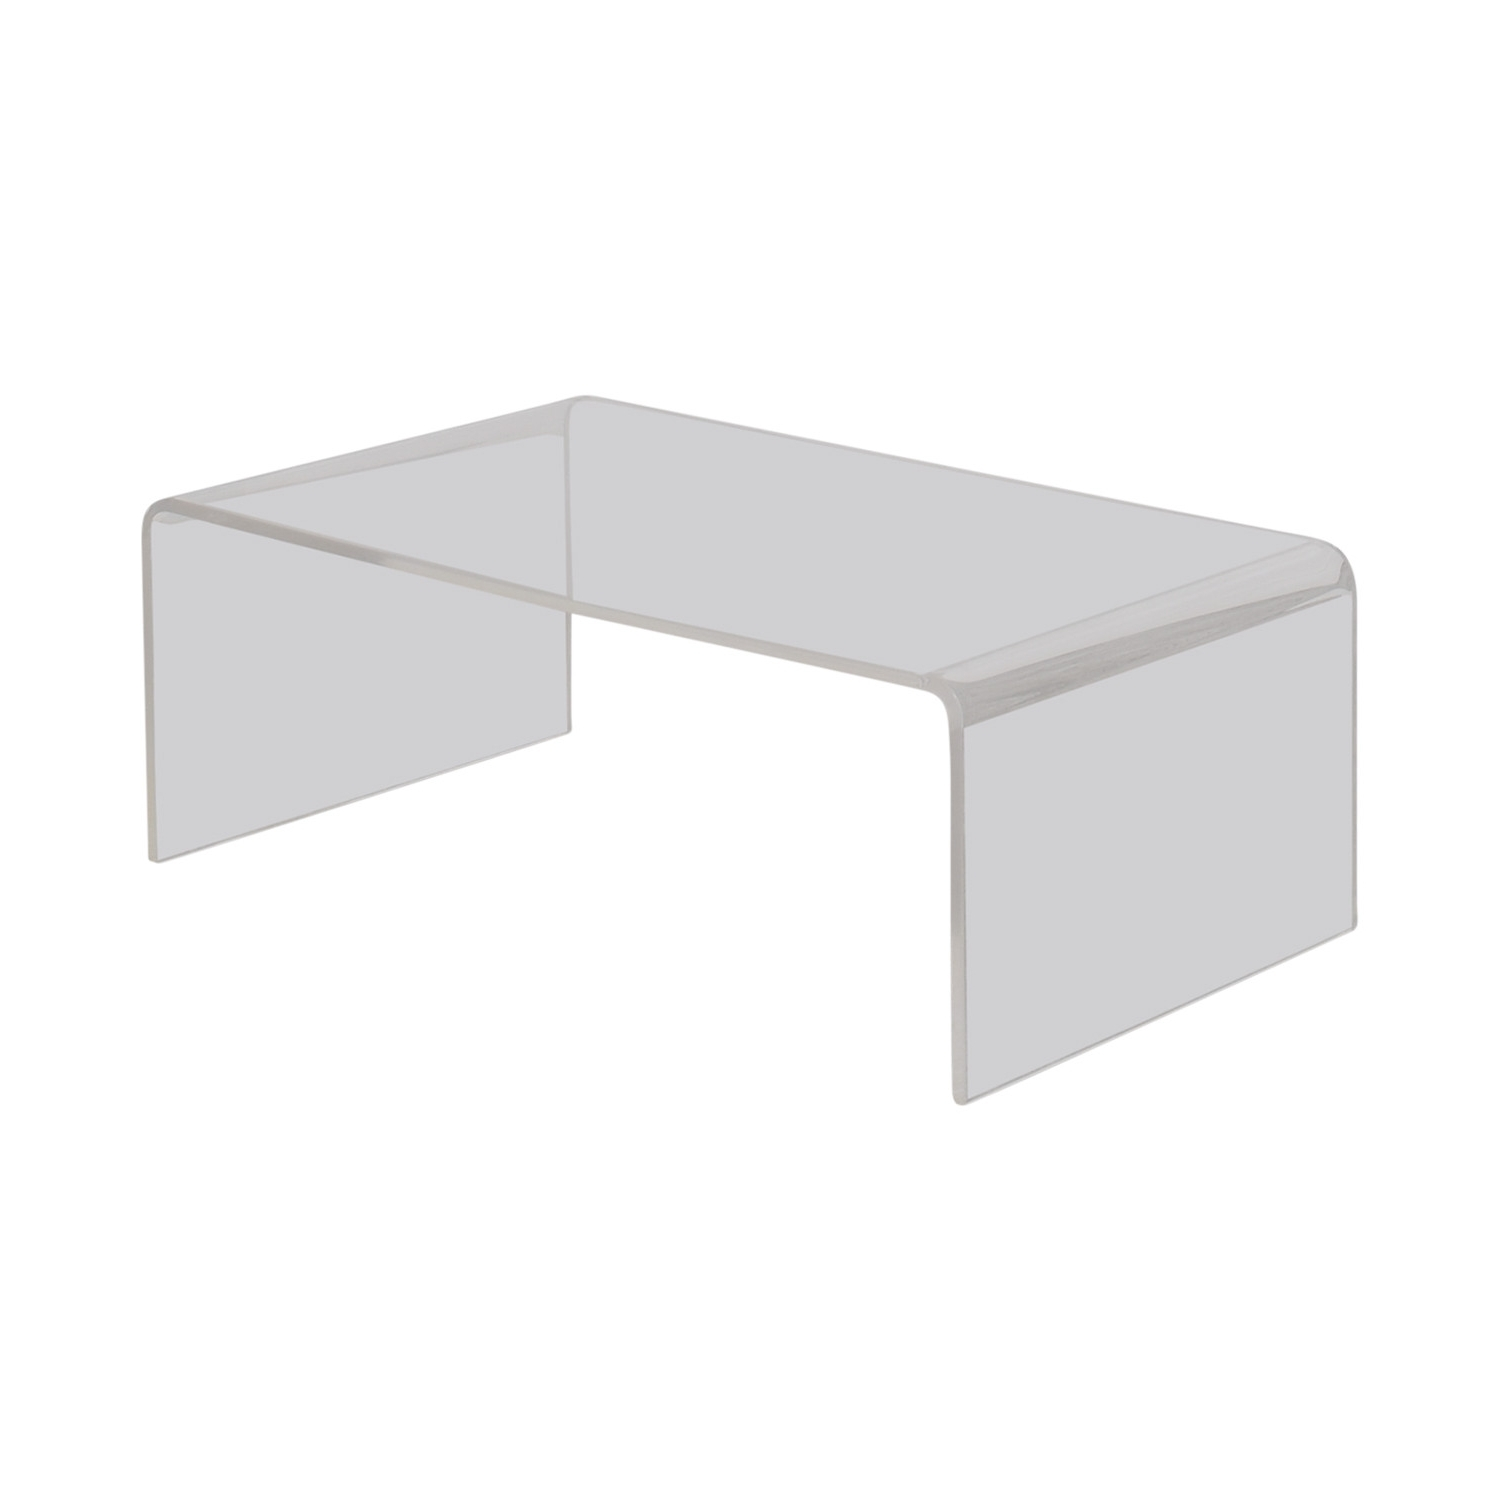 [%Well Liked Peekaboo Acrylic Coffee Tables Throughout Acrylic Coffee Table For Sale Elegant 67% Off Cb2 Cb2 Peekaboo|Acrylic Coffee Table For Sale Elegant 67% Off Cb2 Cb2 Peekaboo With Regard To Popular Peekaboo Acrylic Coffee Tables%] (View 3 of 20)